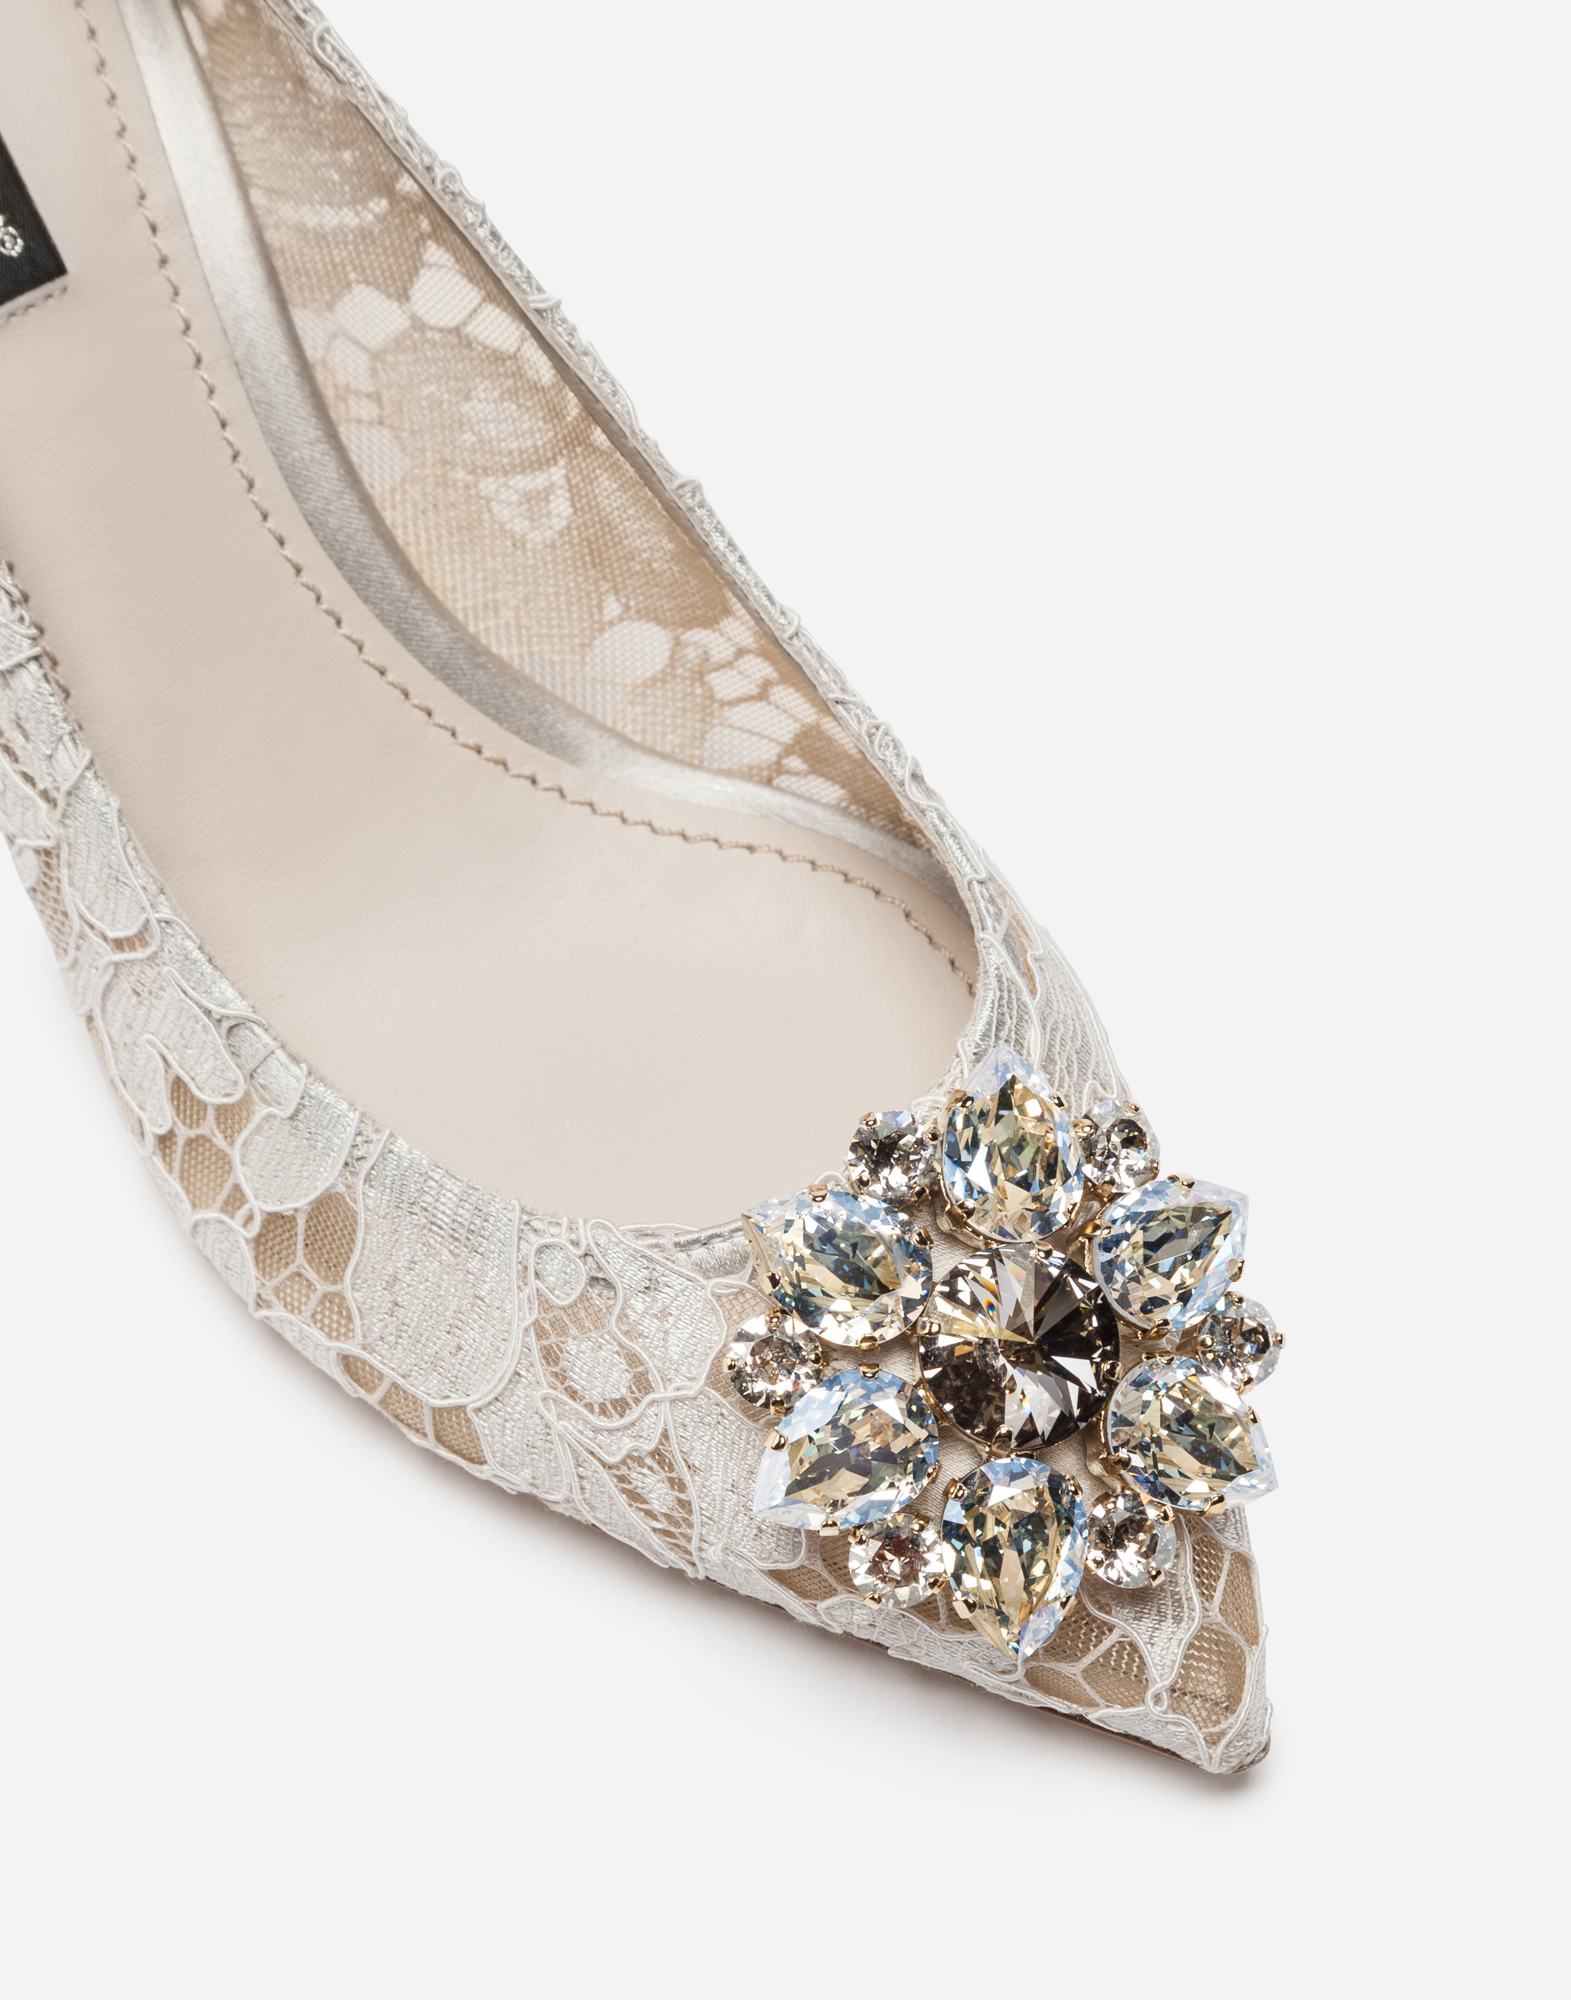 Dolce&Gabbana PUMP IN TAORMINA LACE WITH CRYSTALS